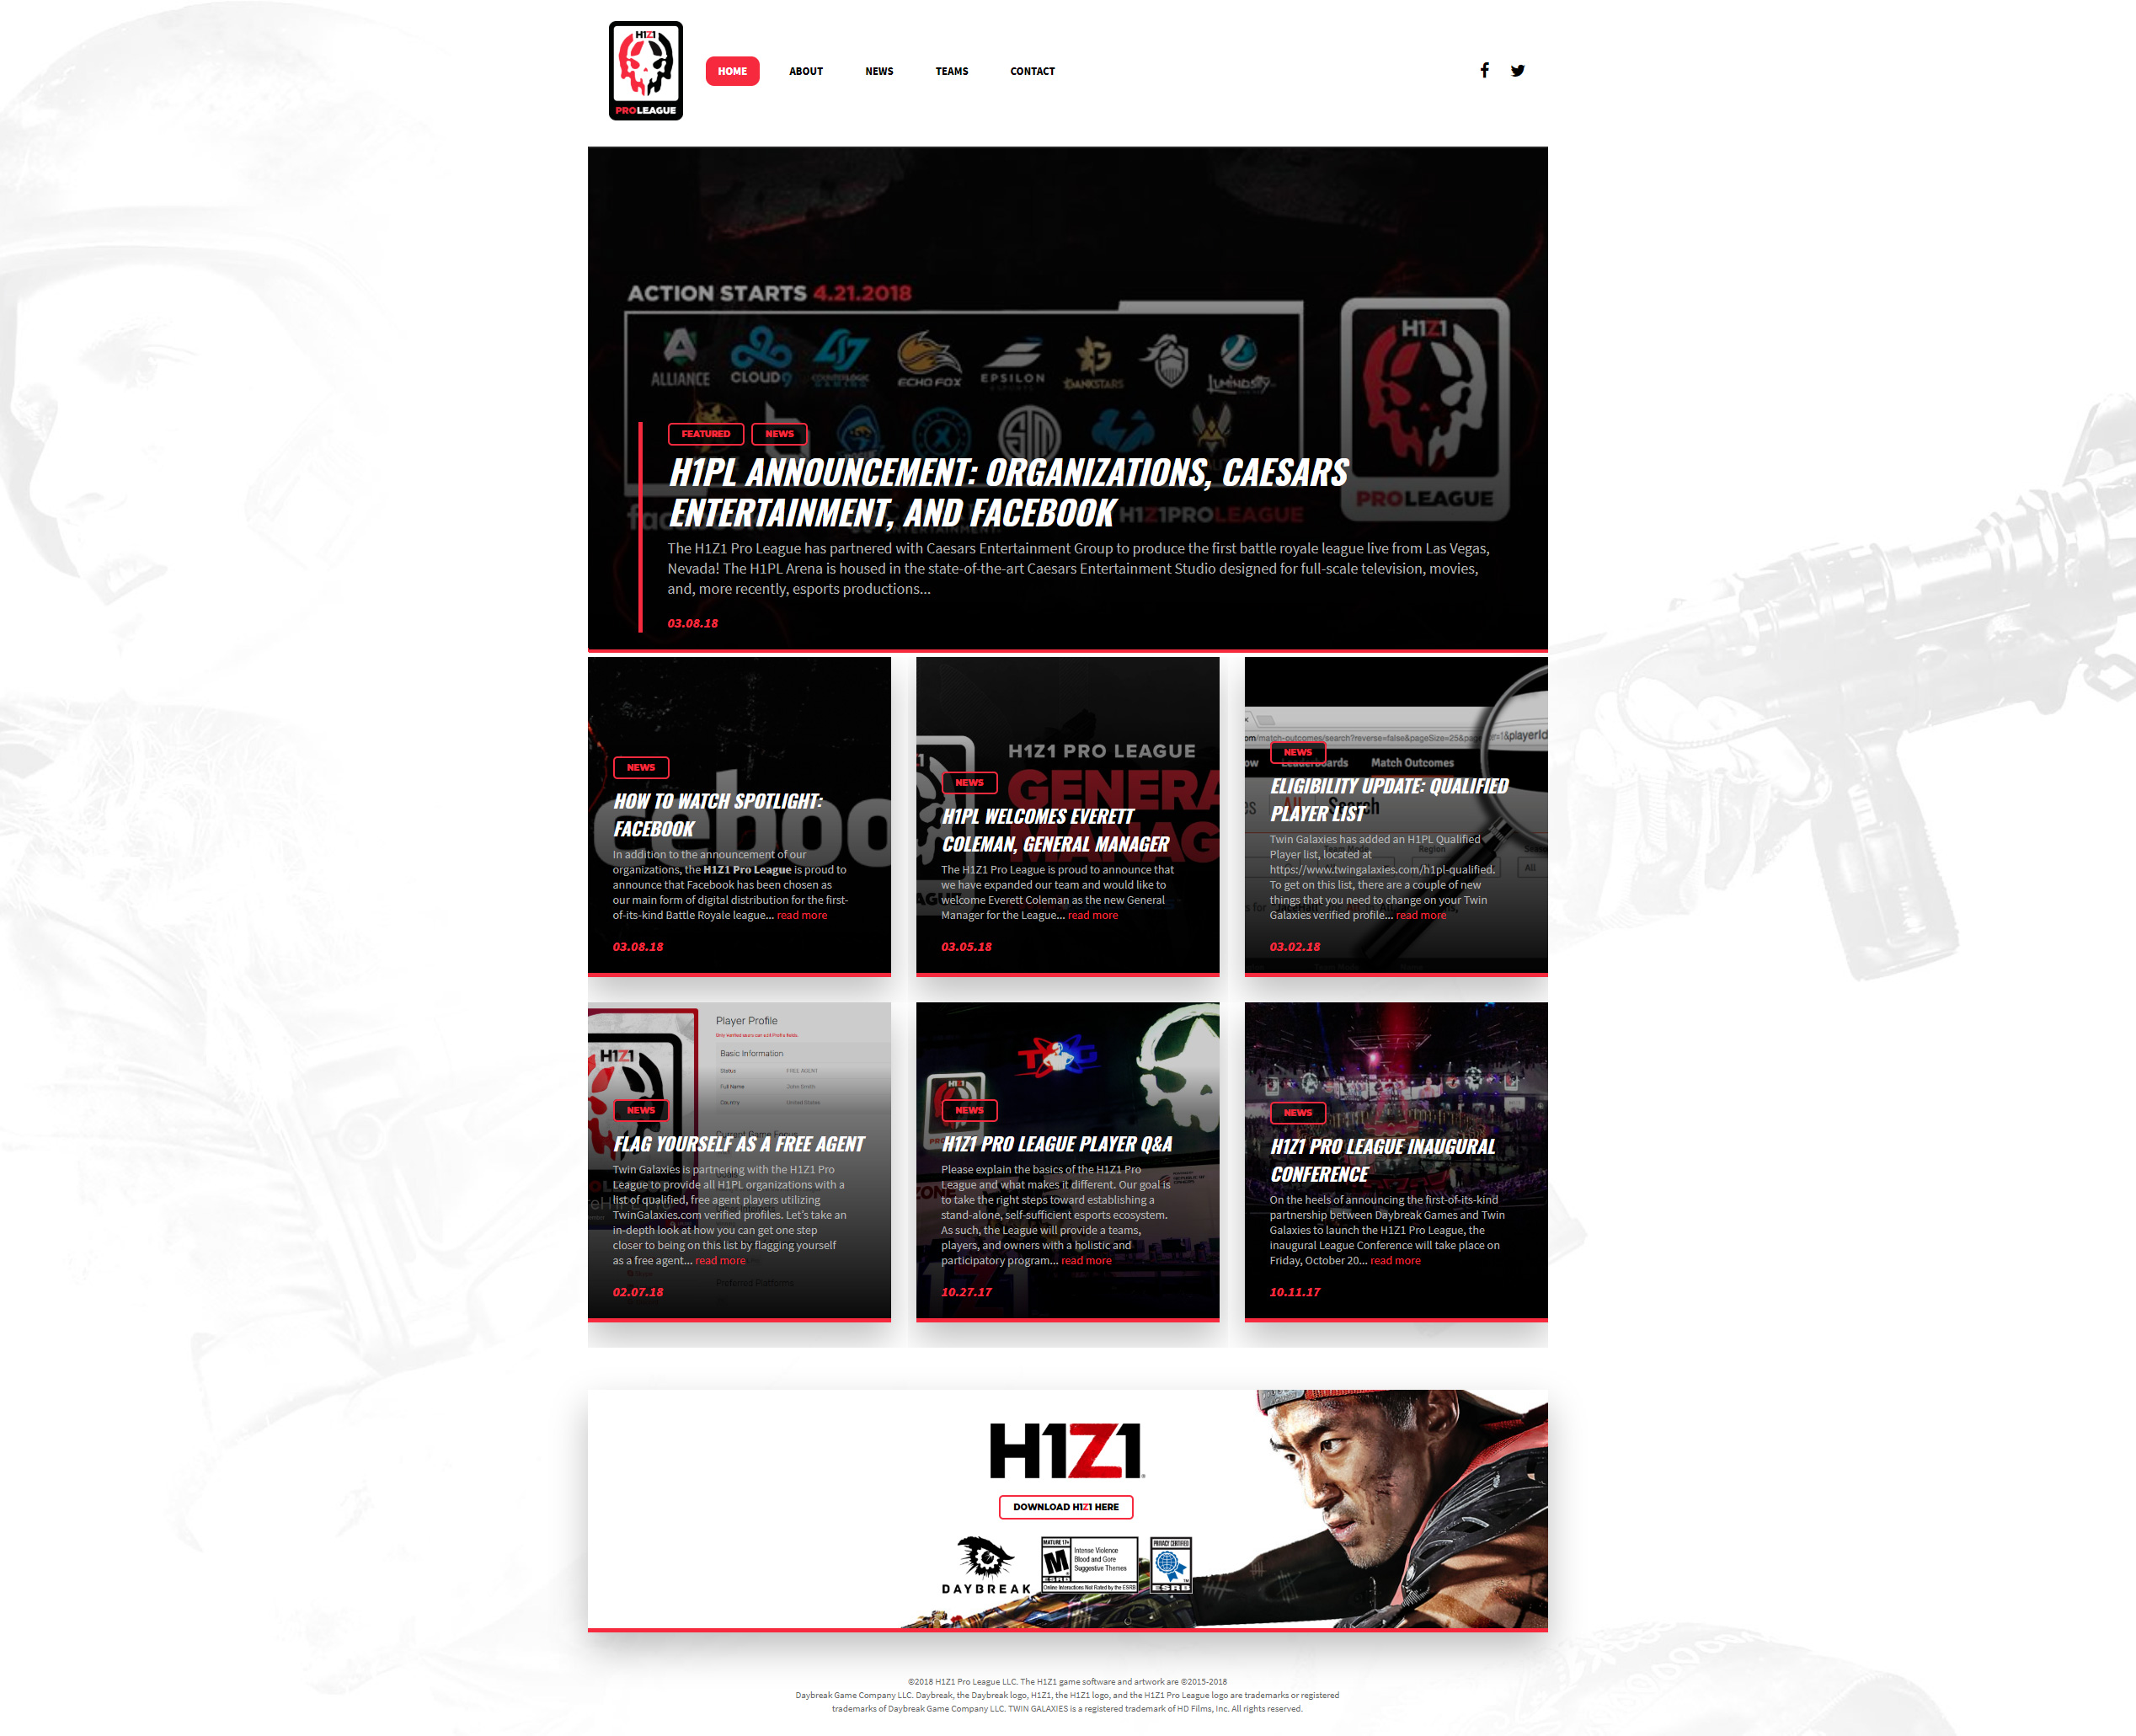 H1Z1 Pro League - First Post